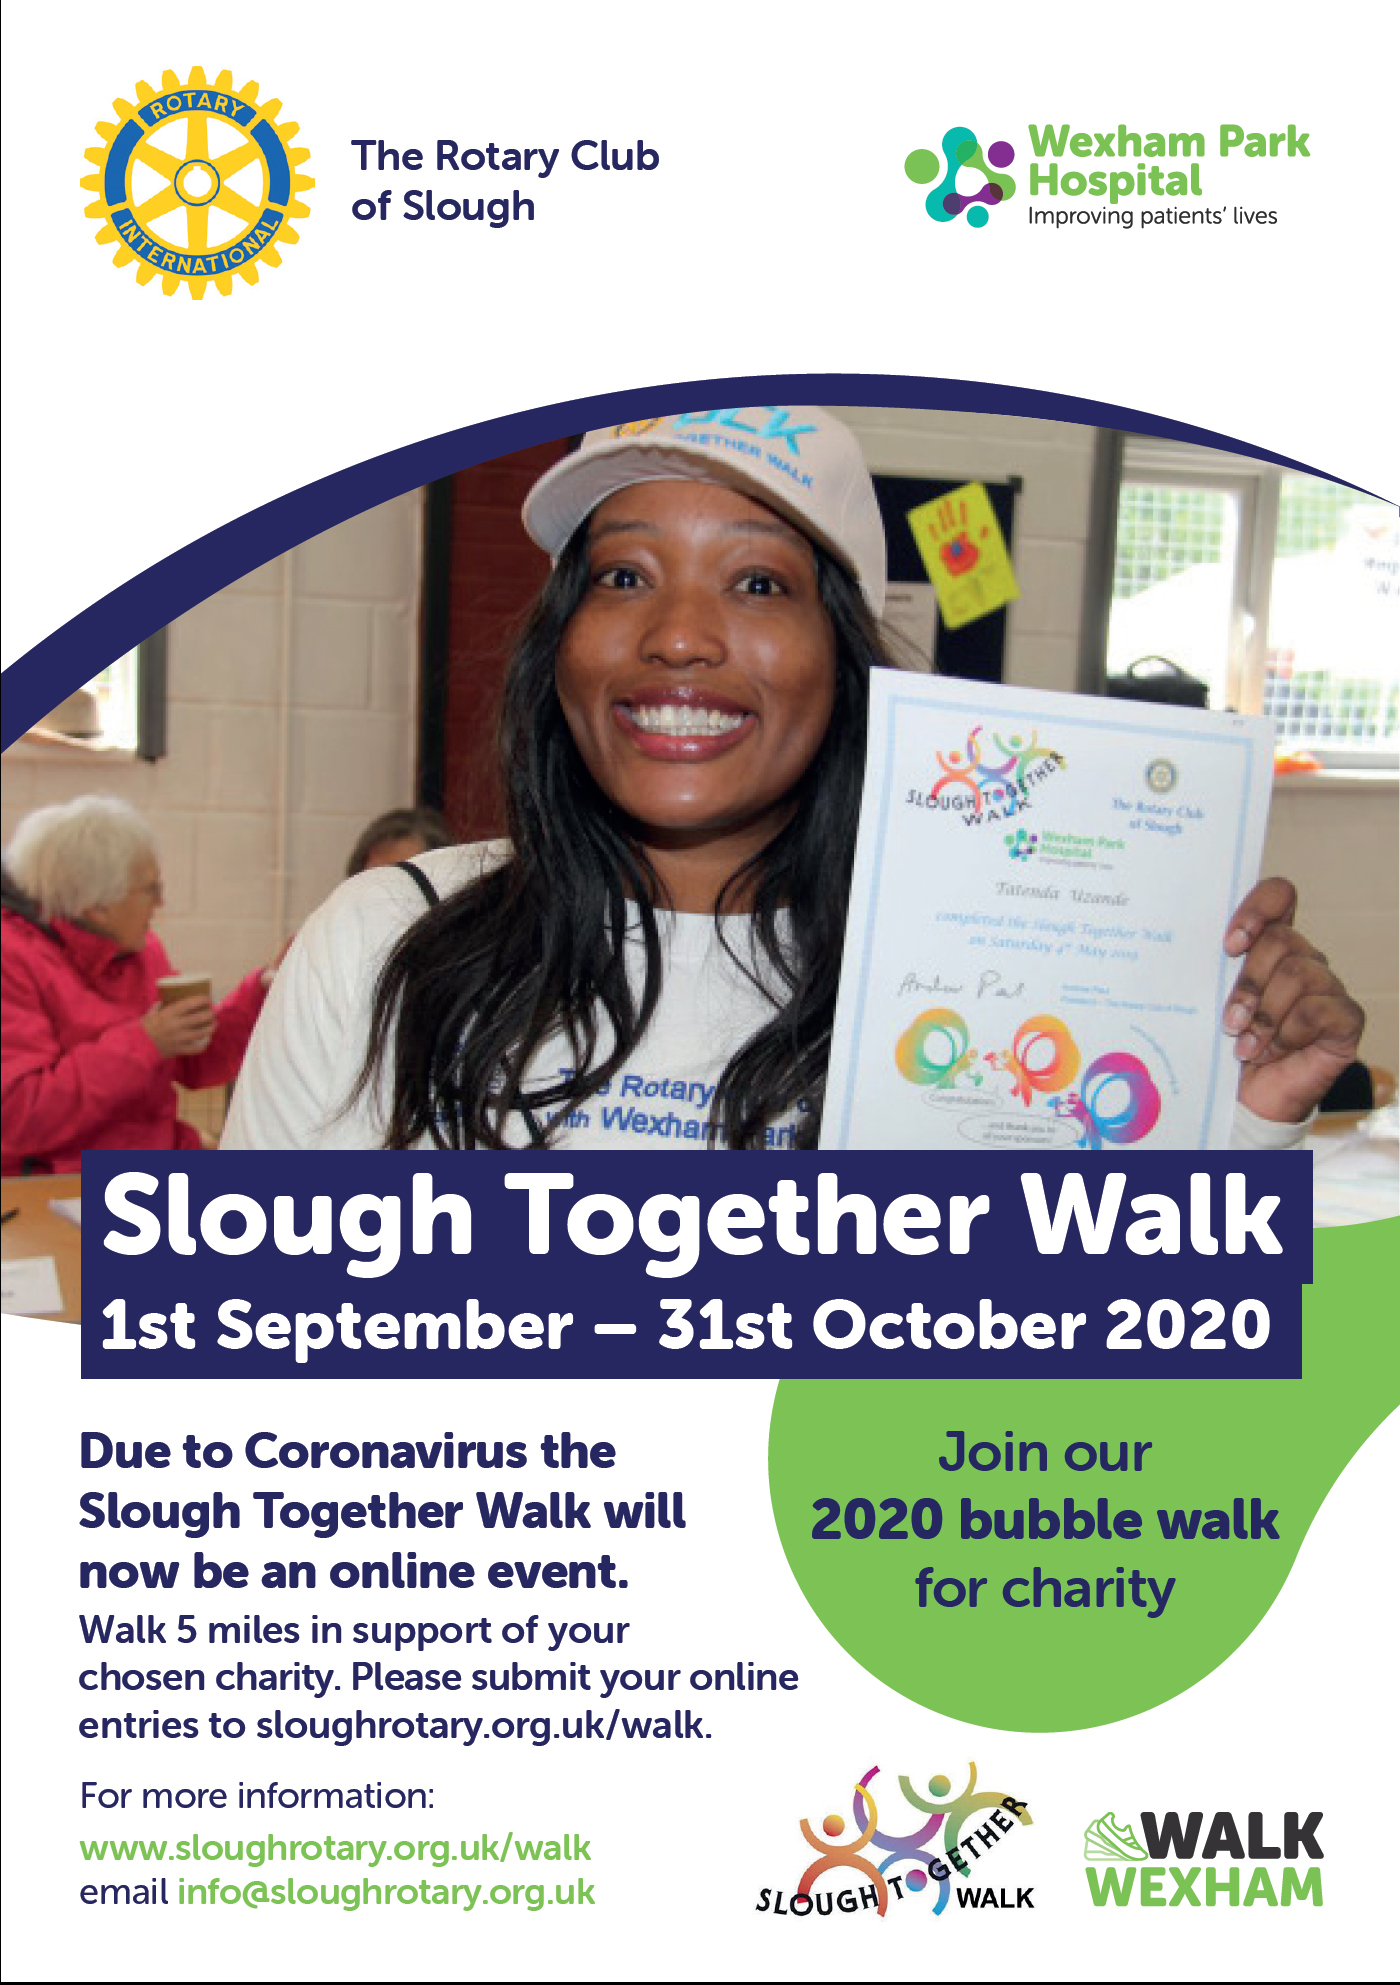 Slough Rotary Together Walk is back on